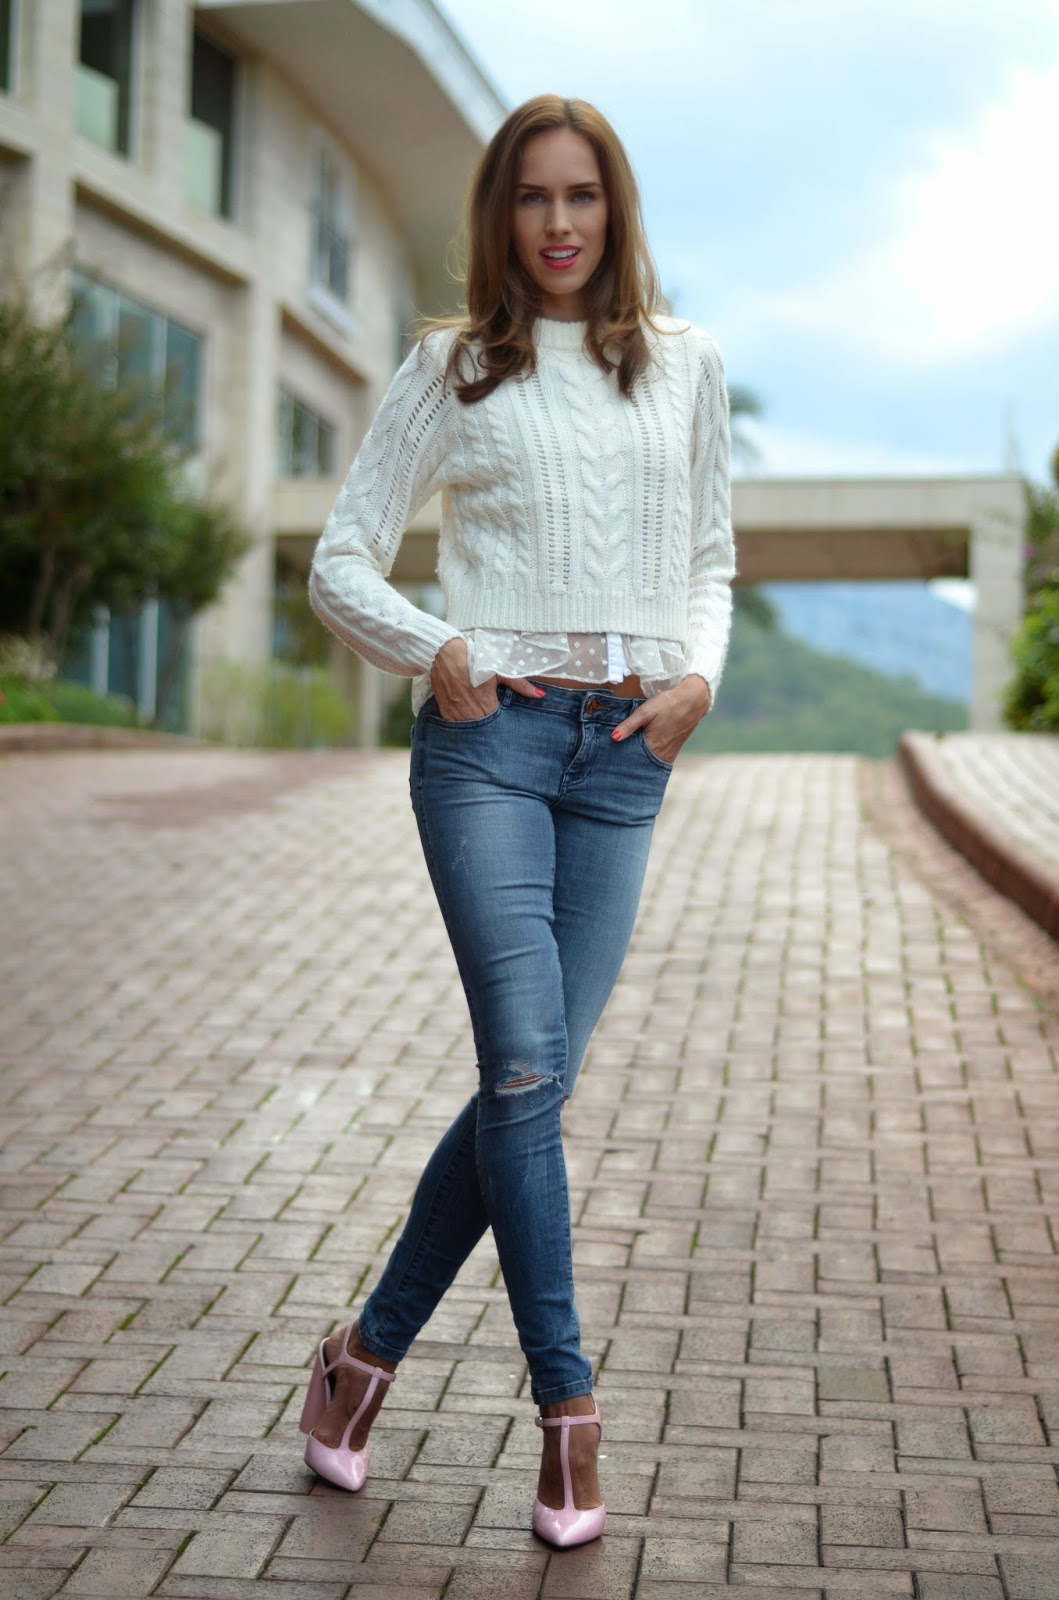 white-gina-tricot-jumper-blue-zara-jeans-pink-shoes kristjaana mere